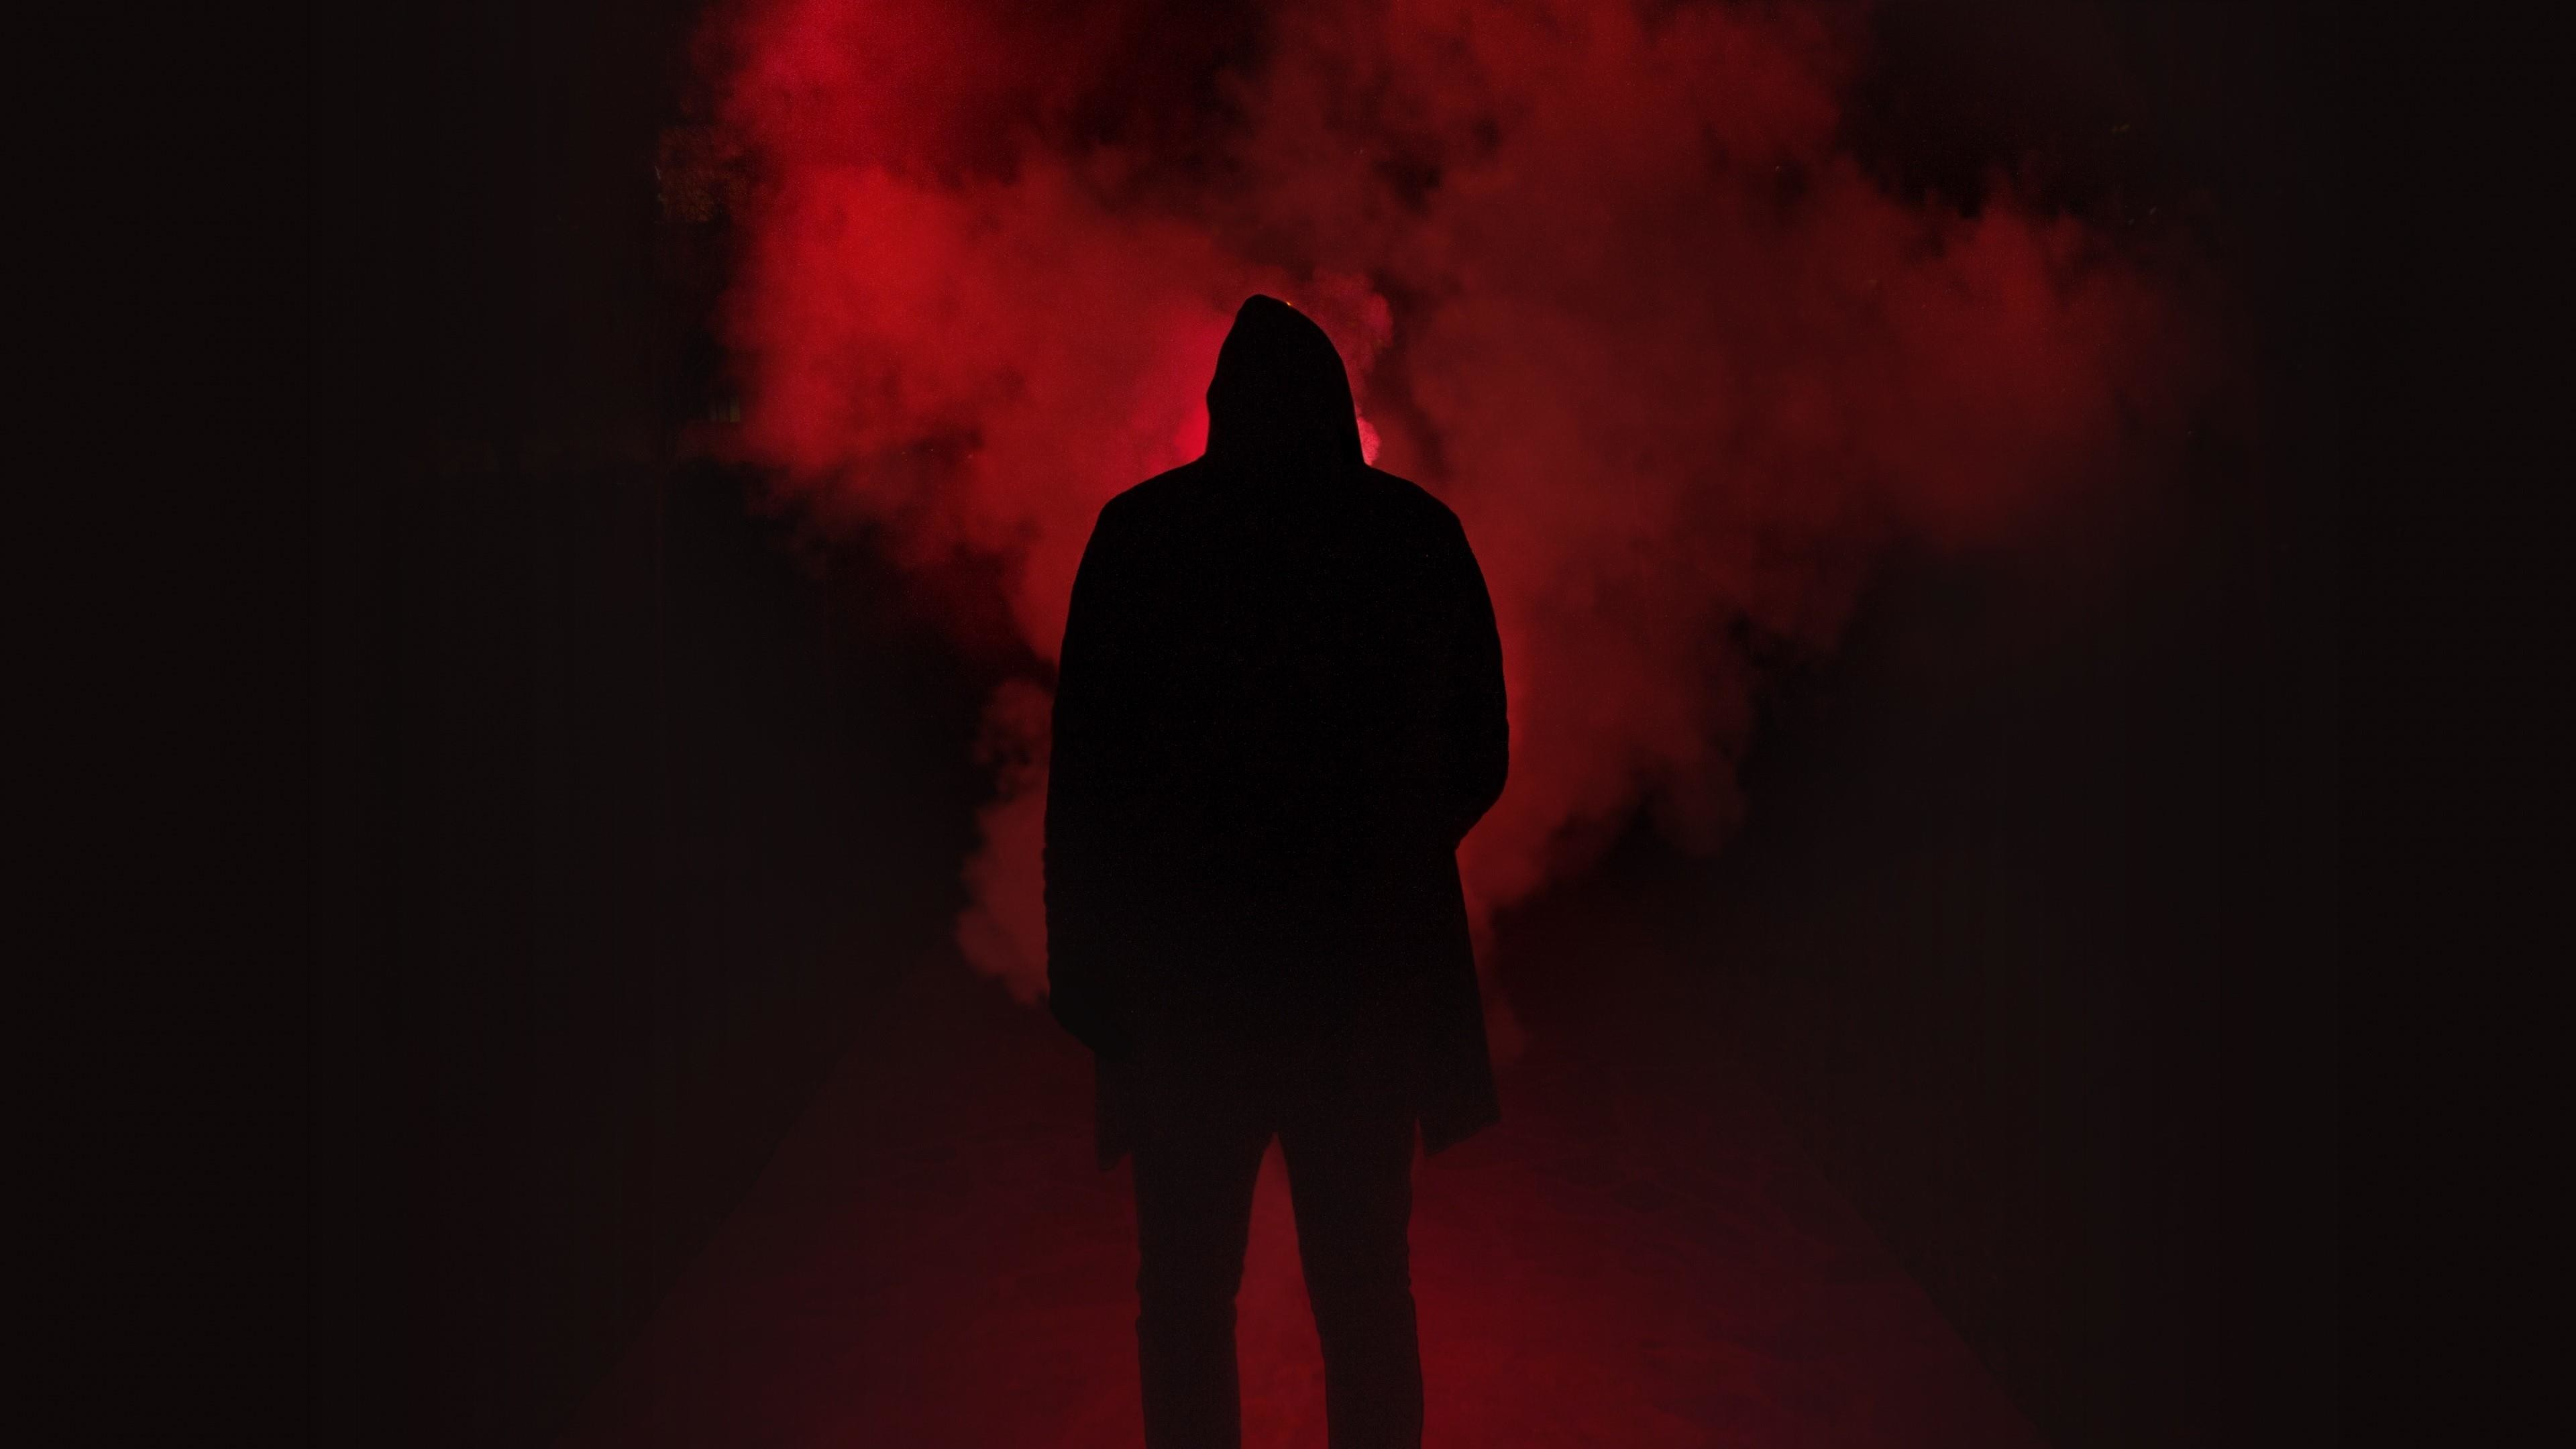 Res: 3840x2160, Man Silhouette In The Dark Wallpaper | Wallpaper Studio 10 | Tens of  thousands HD and UltraHD wallpapers for Android, Windows and Xbox